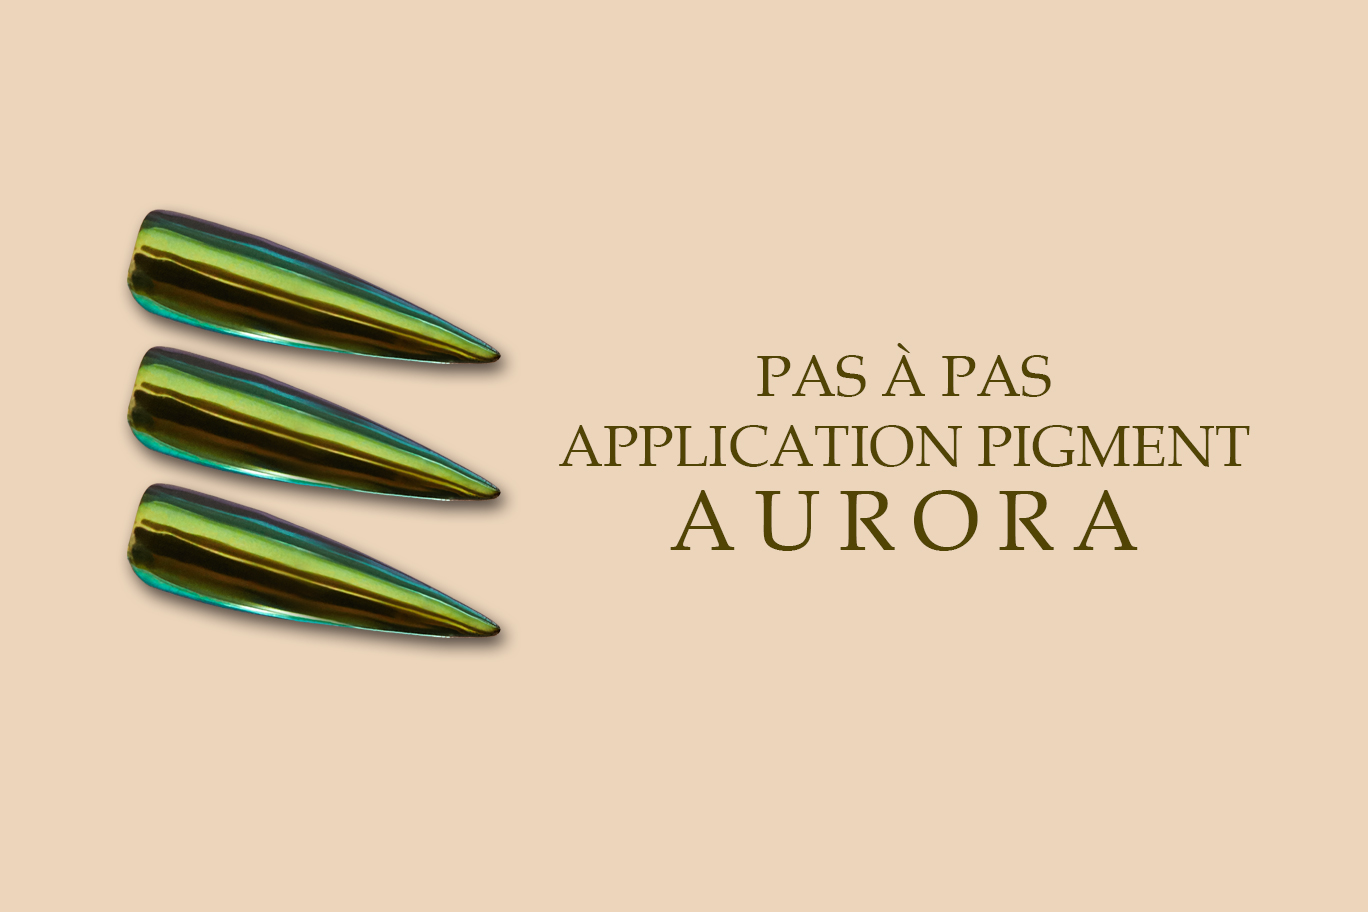 pas a pas application pigment aurora